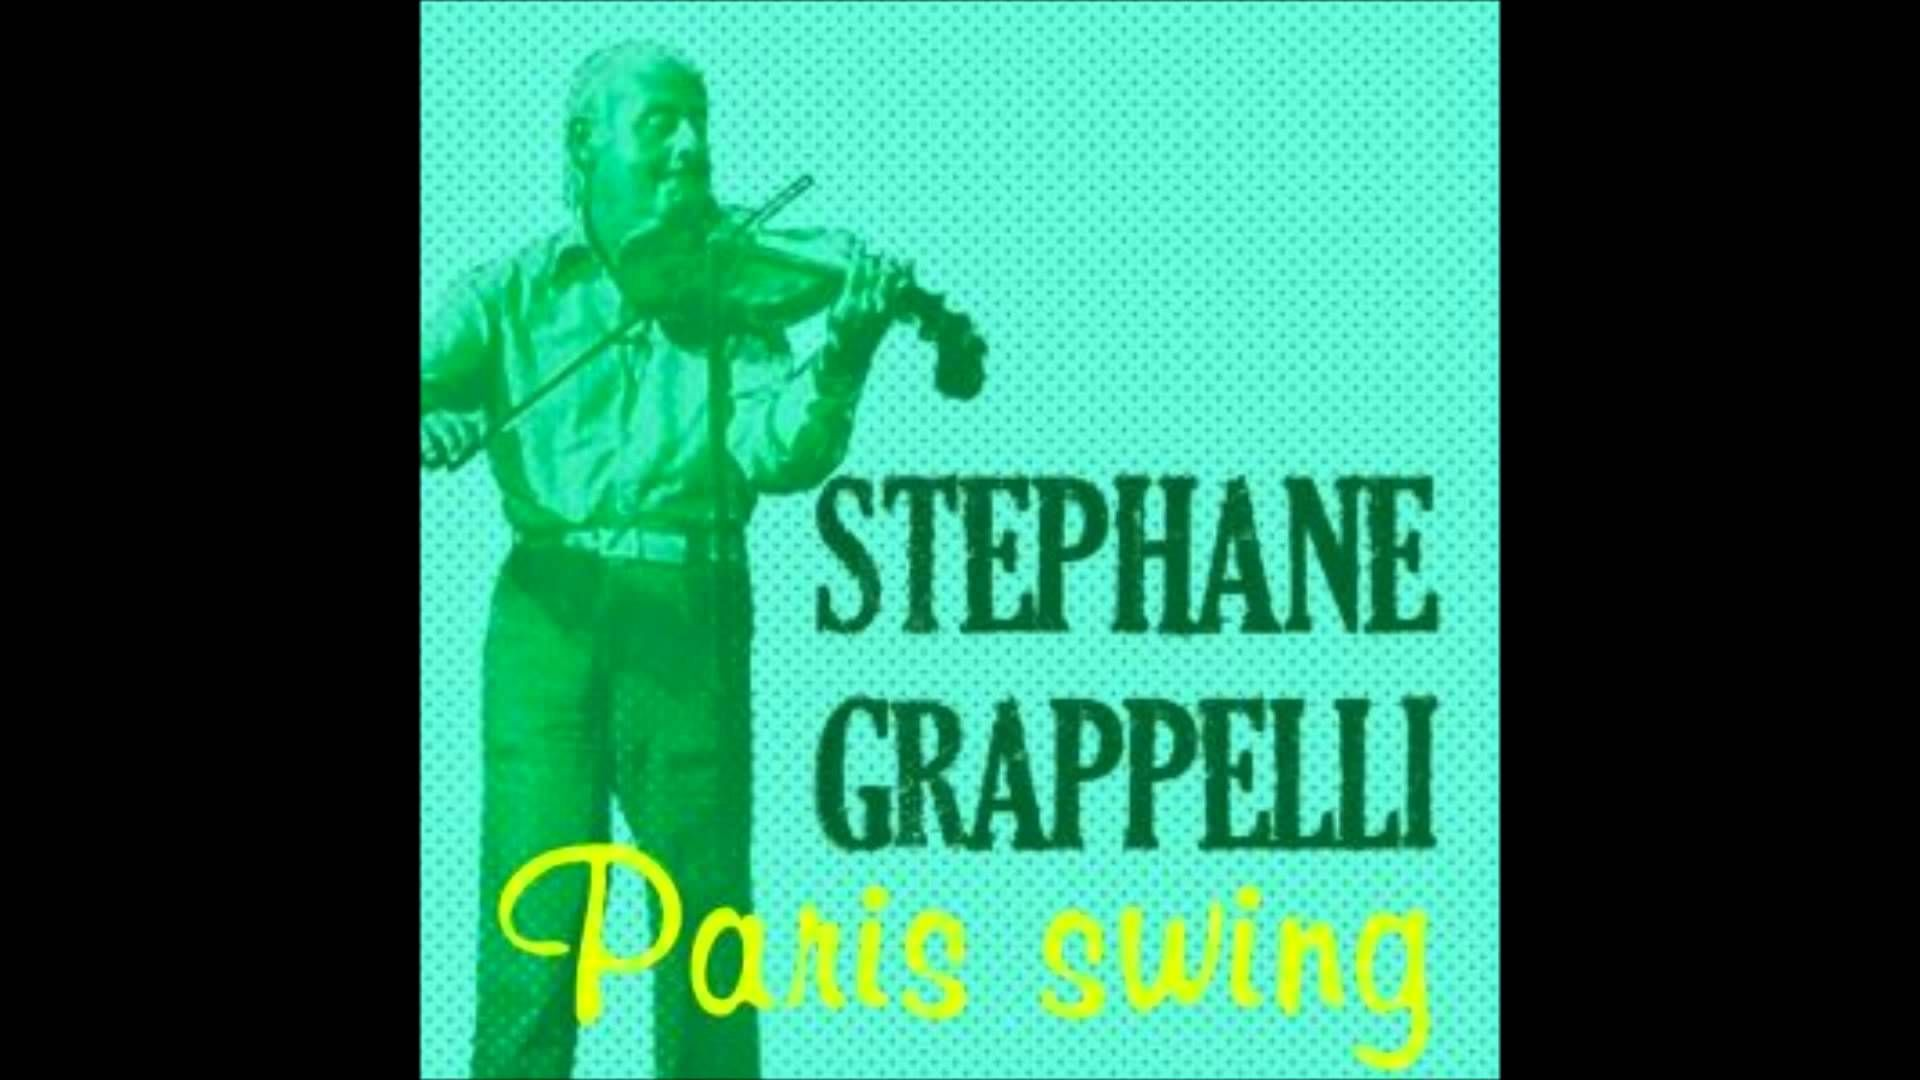 Stéphane Grappelli - The World Is Waiting for the Sunrise